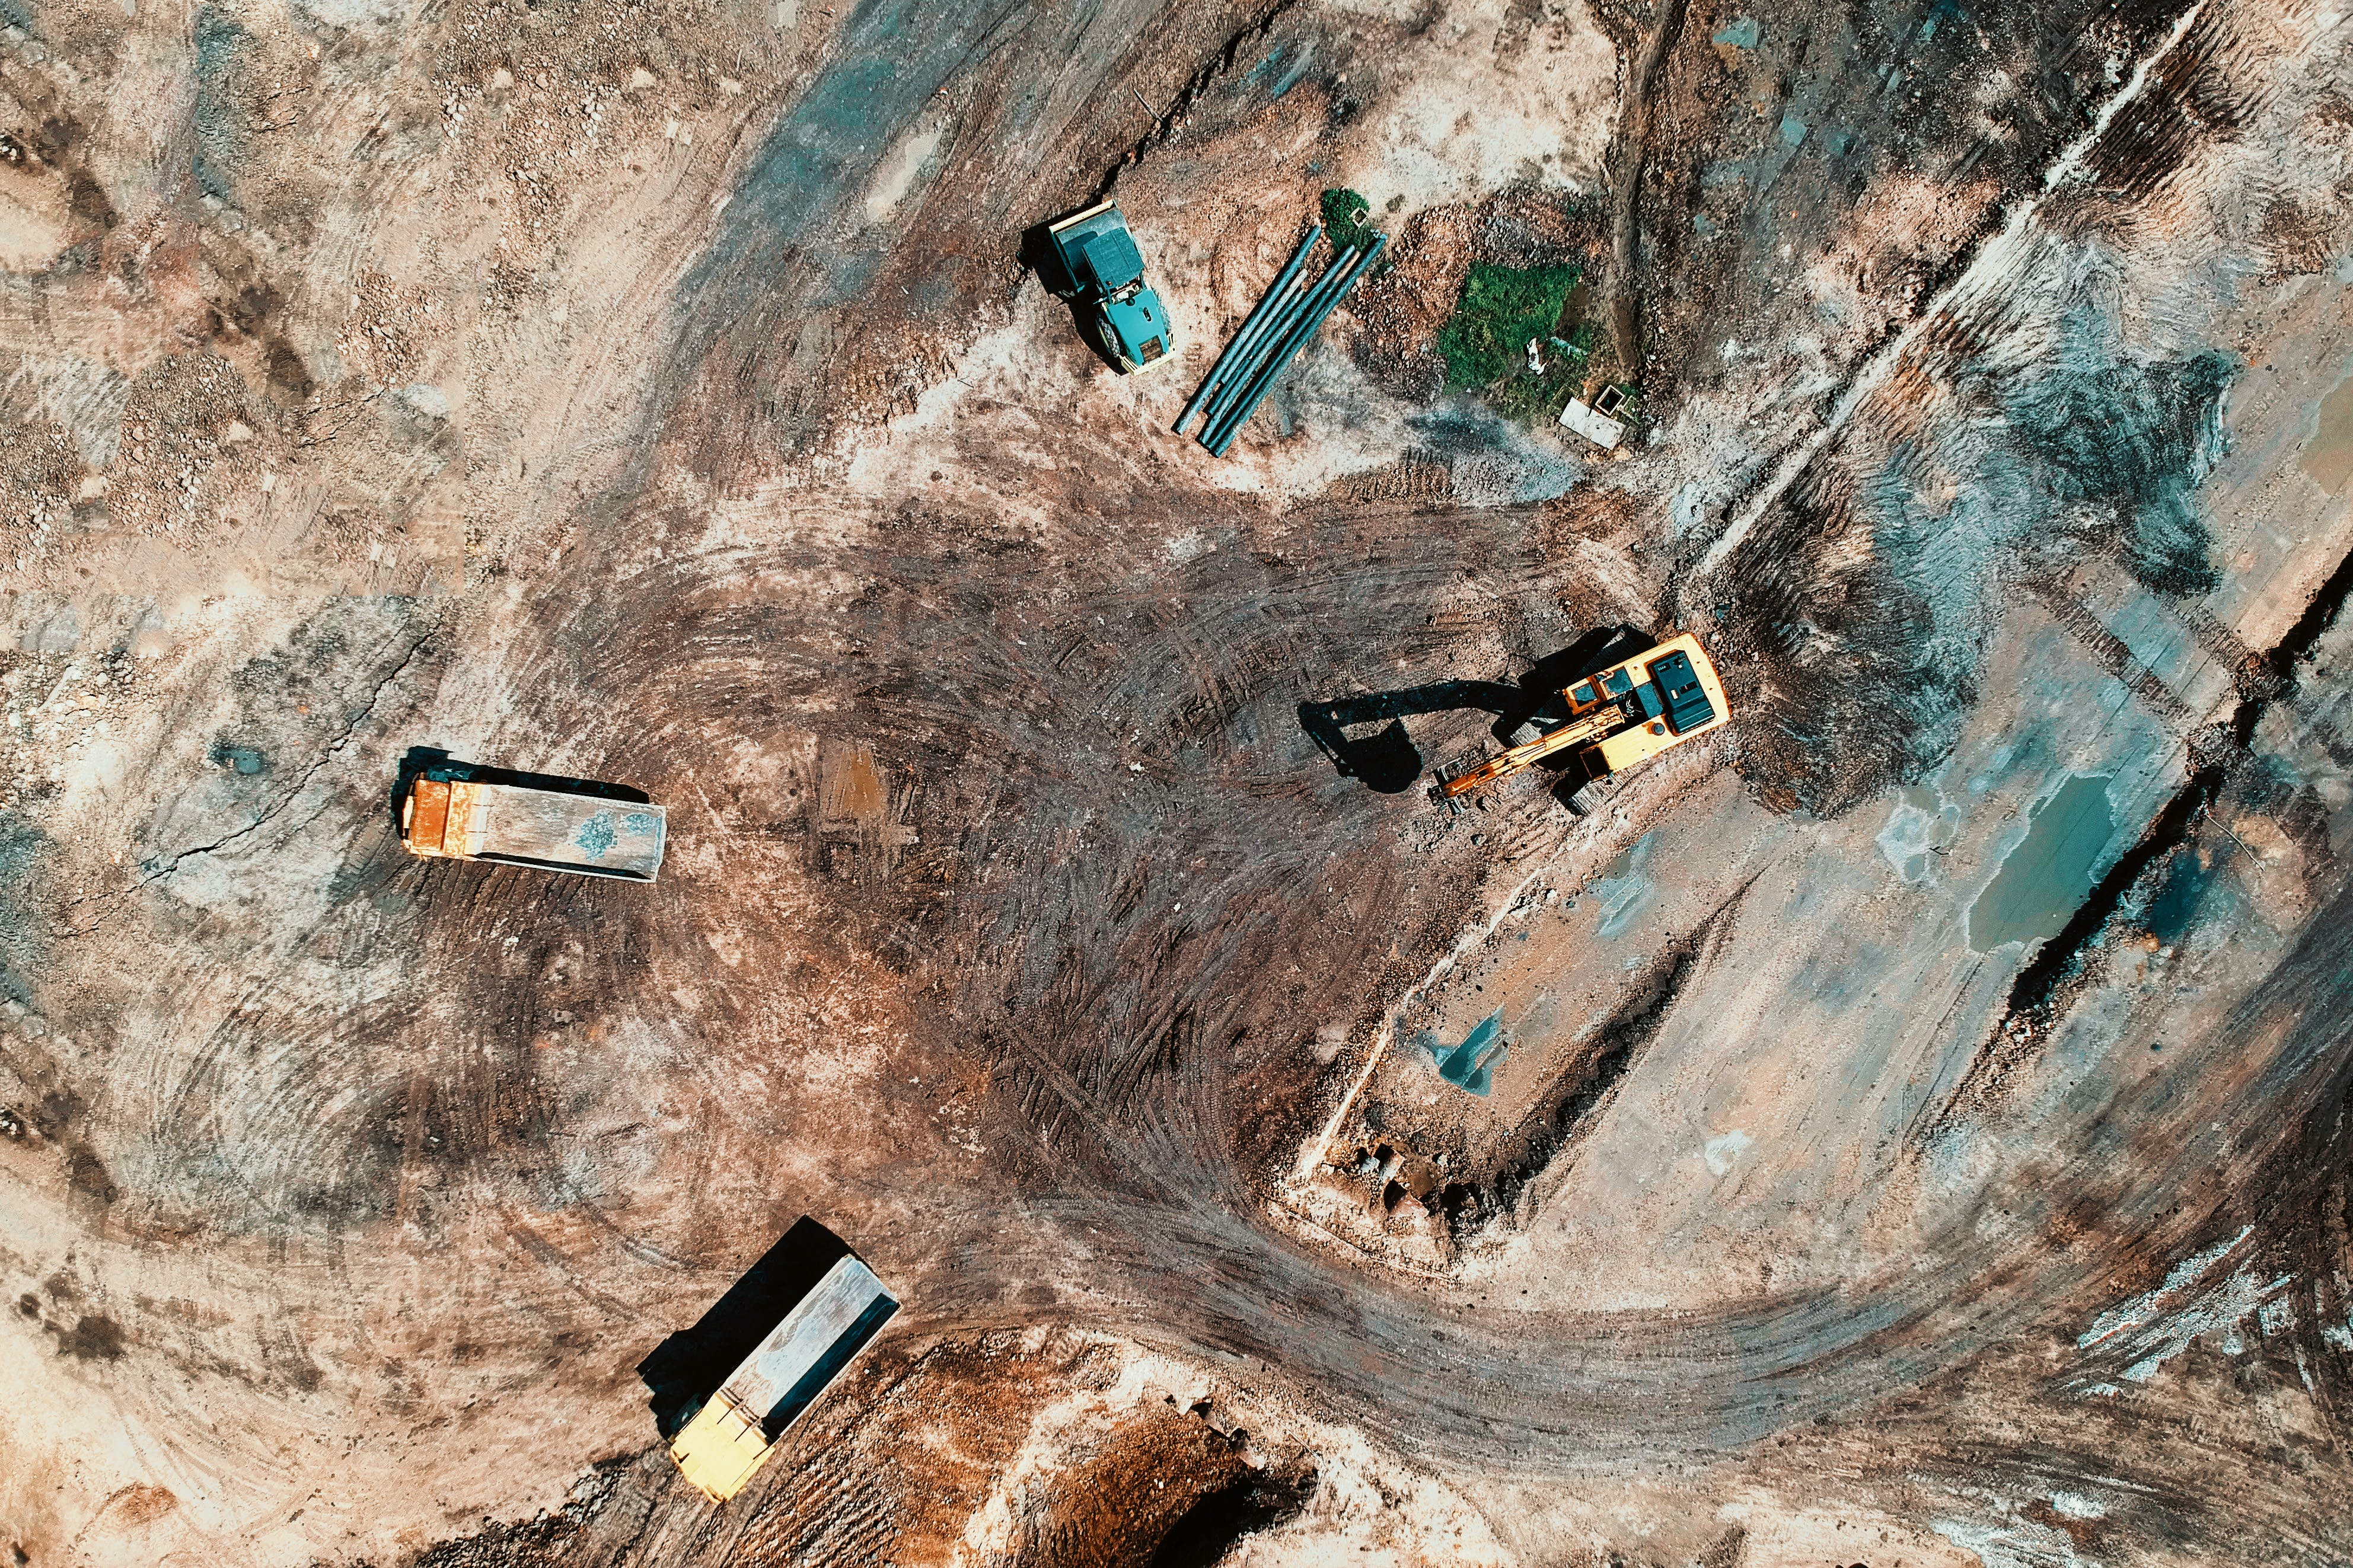 Aerial View Photography Of Utility Vehicles On Brown Soil